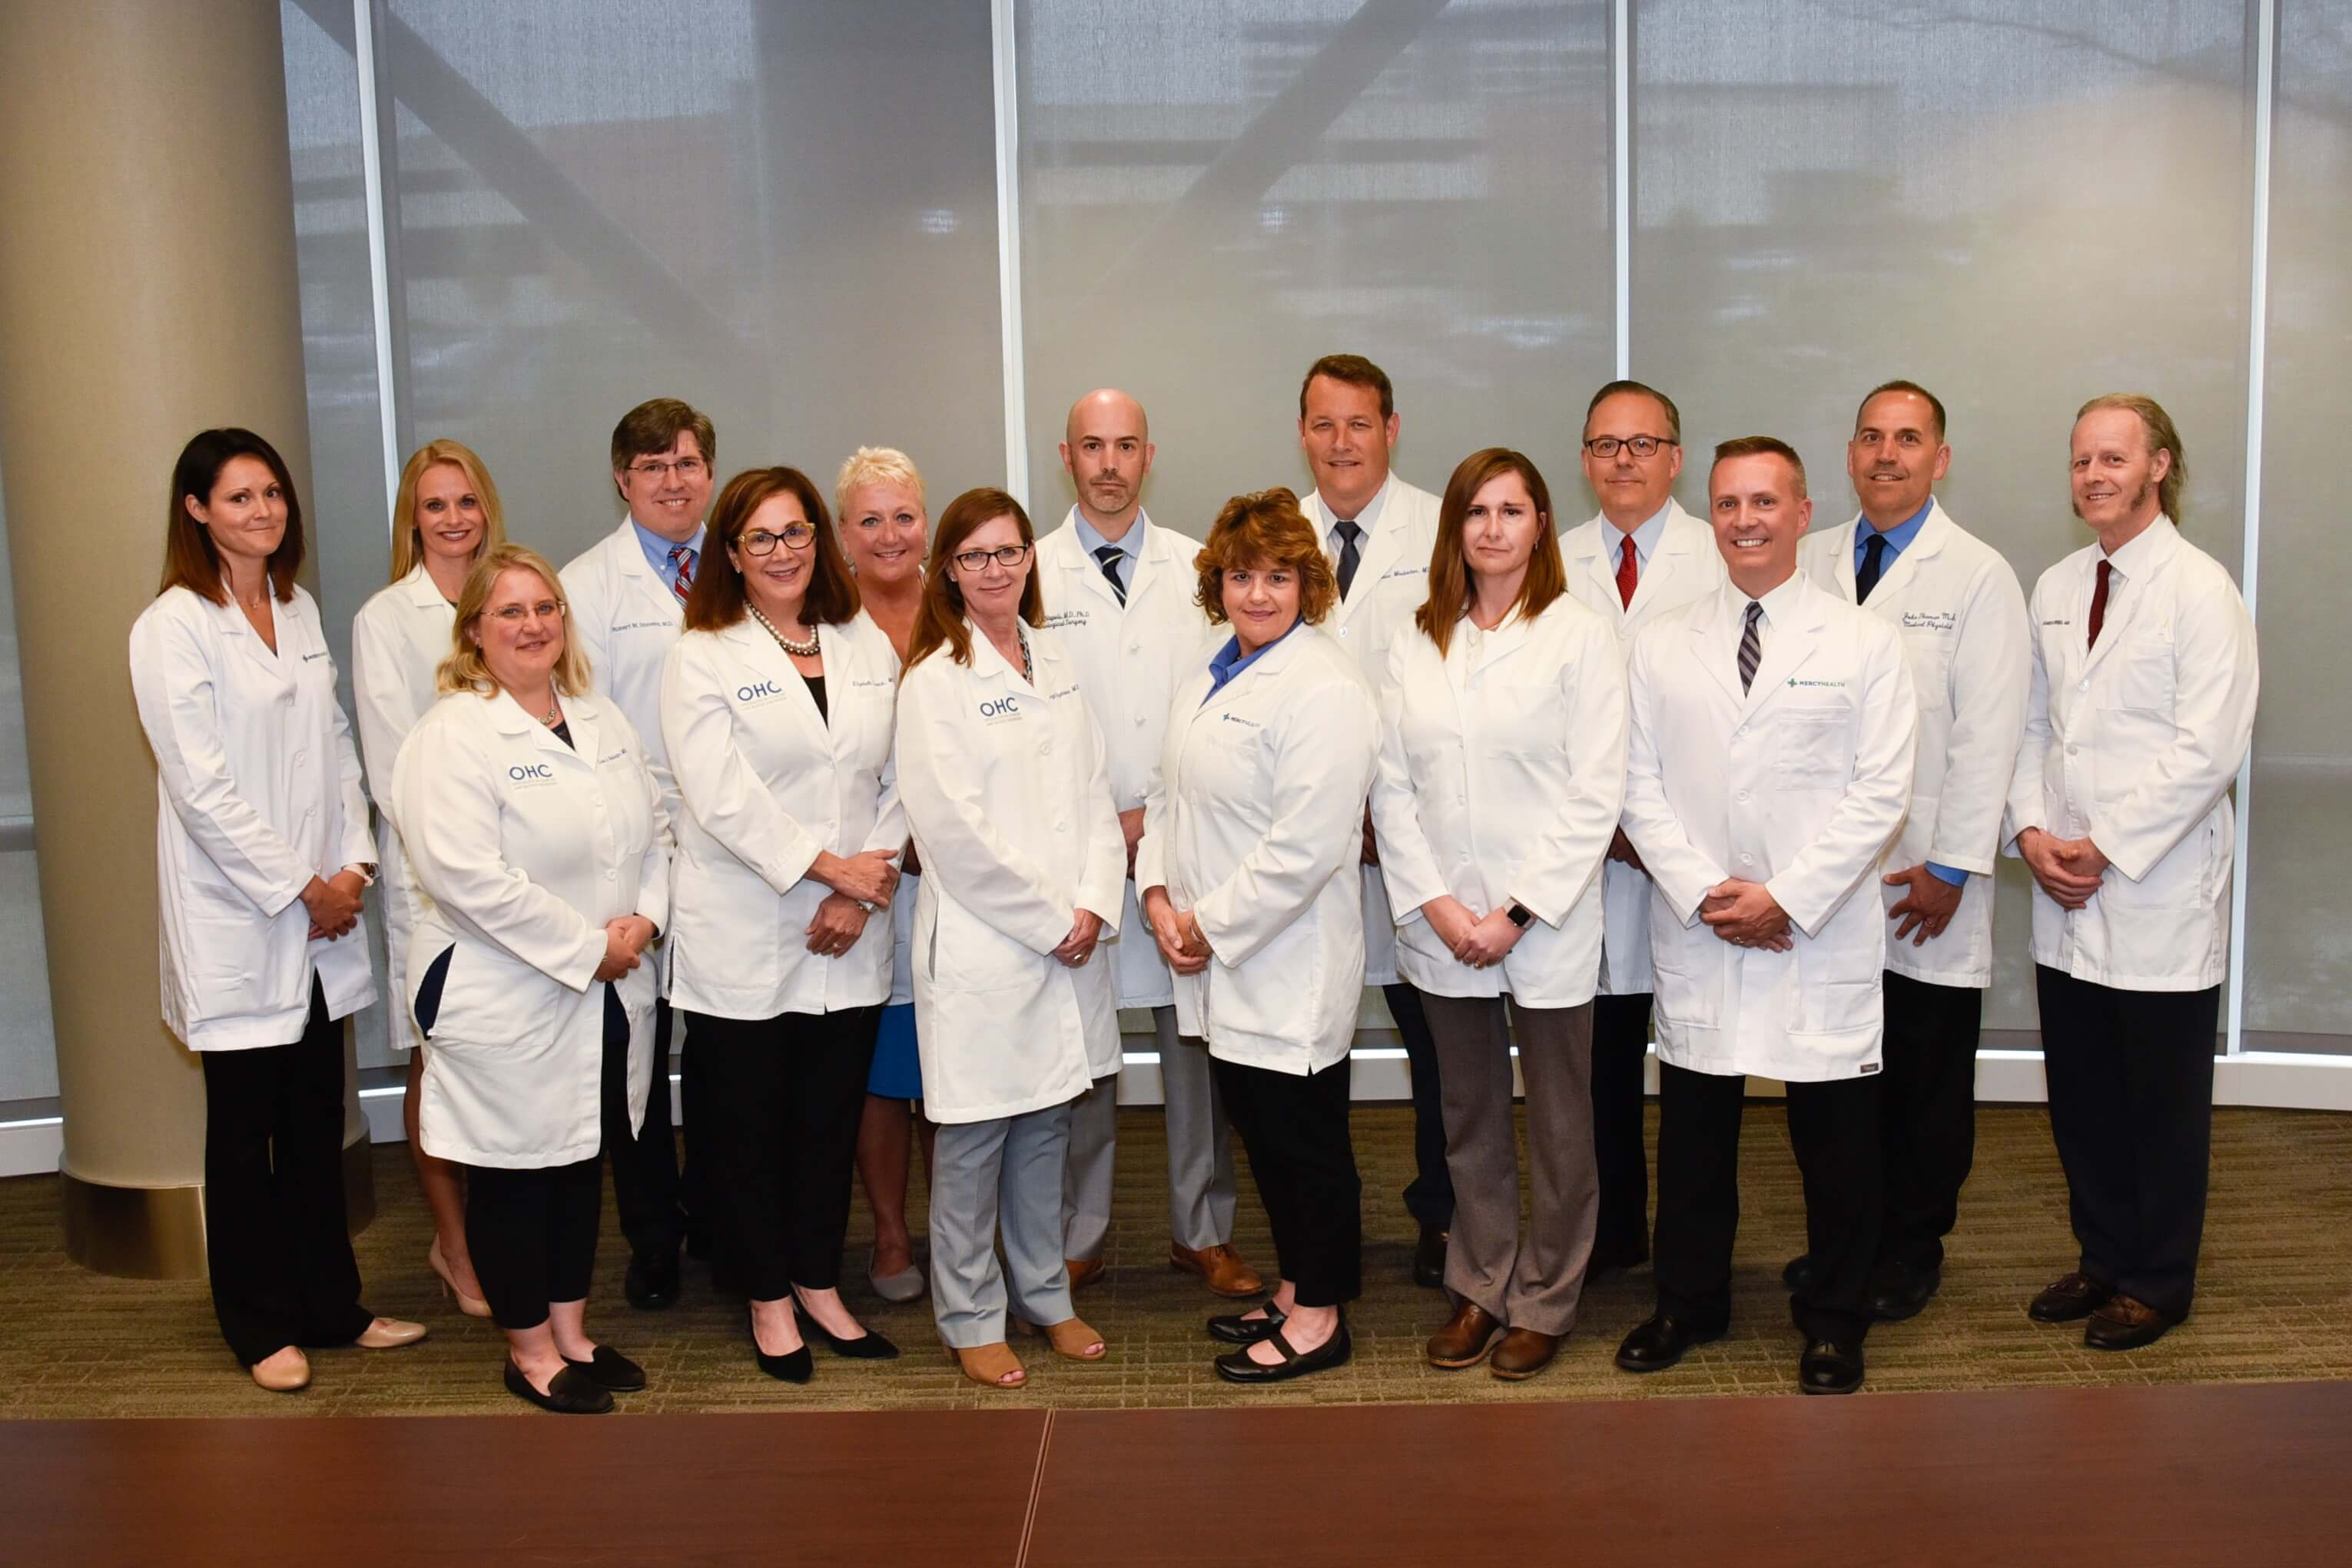 The Jewish Hospital Mercy Health Brain Tumor Center - Tumor Board Group